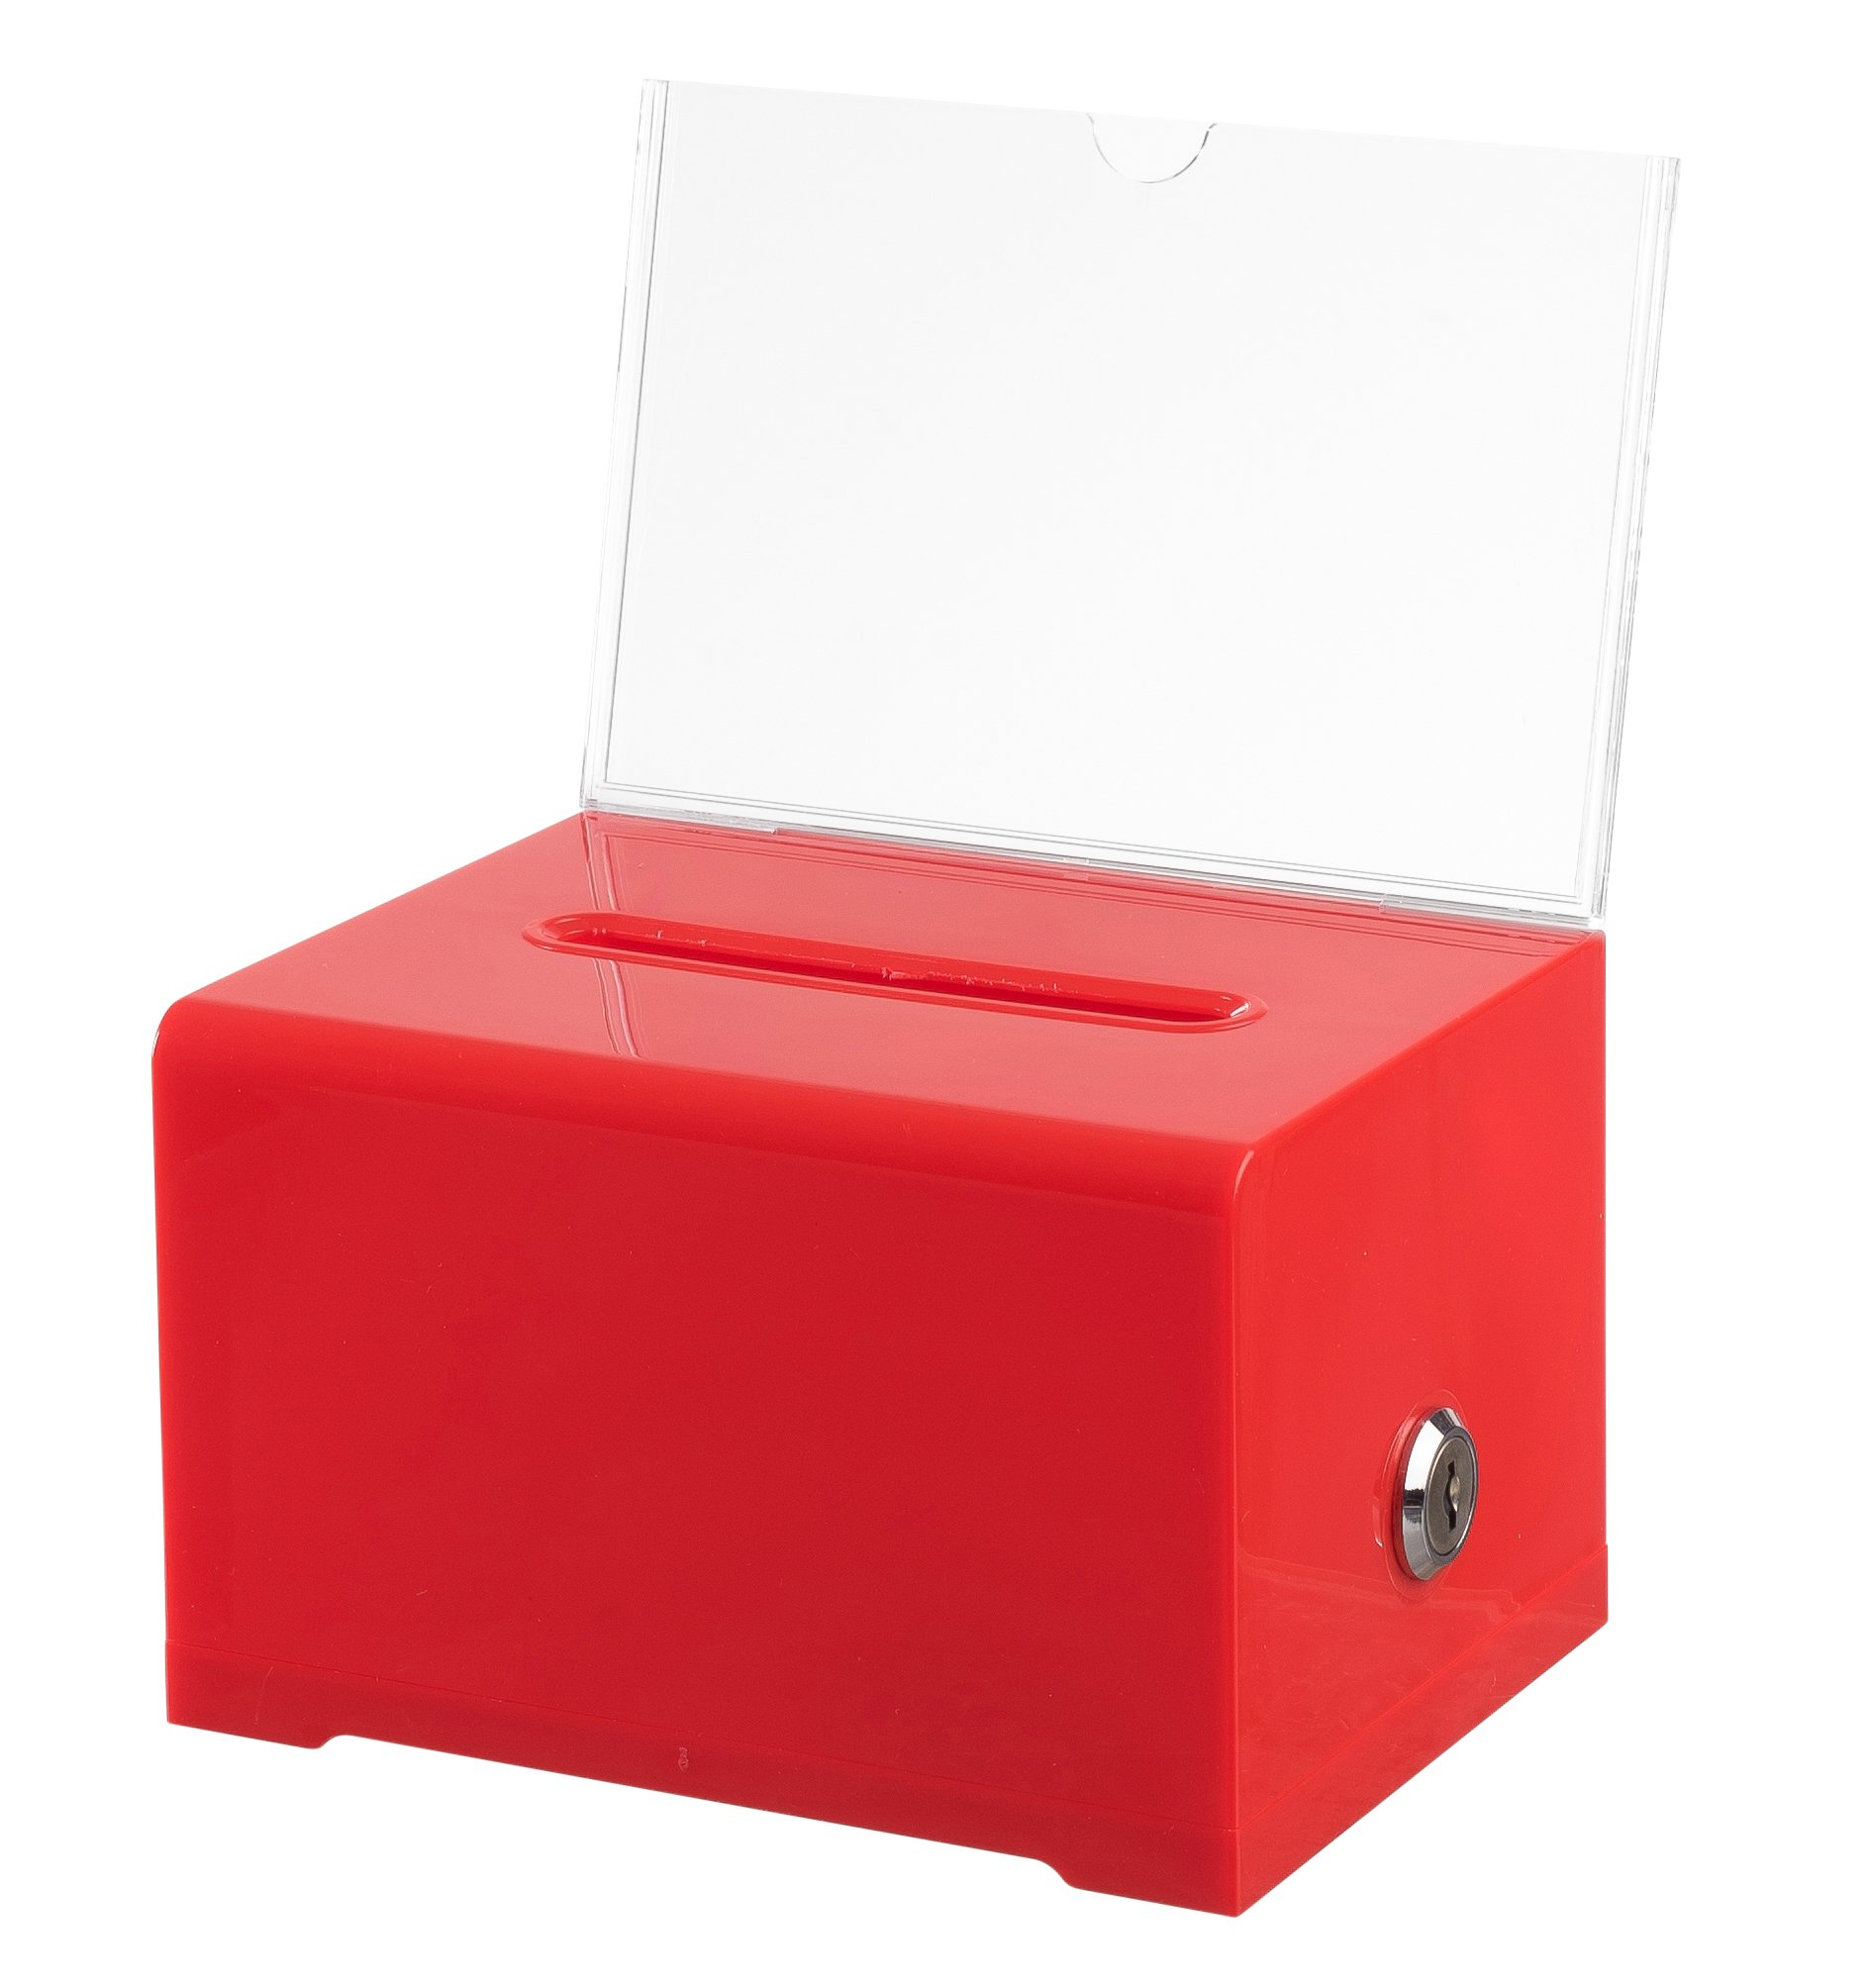 Adir Acrylic Donation & Ballot Box with Lock (6.25'' X 4.5'' X 4'') - Red